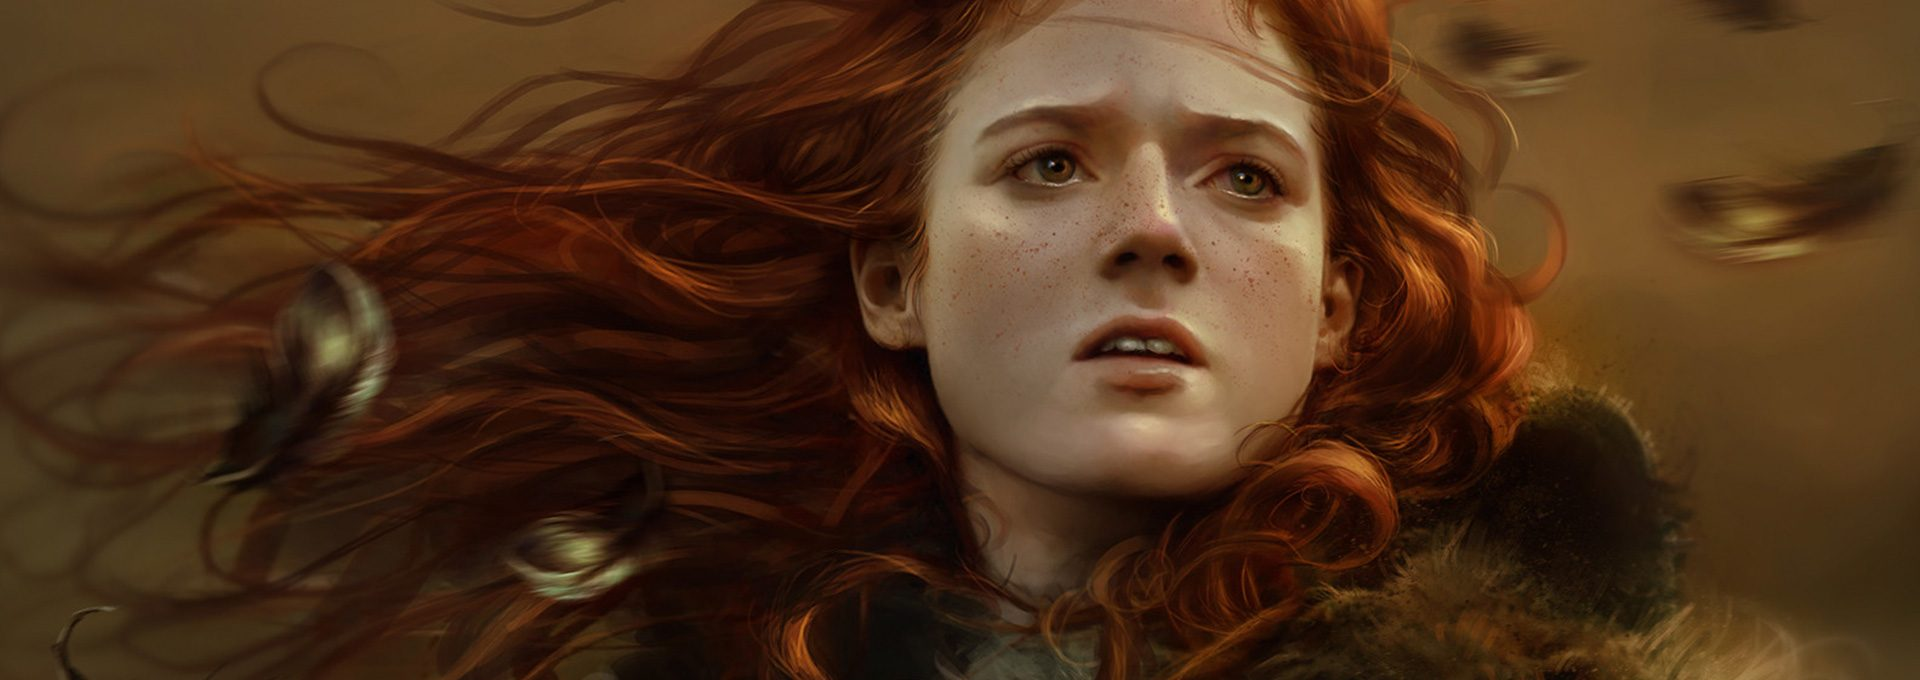 35 Game of Thrones Inspired Digital Paintings